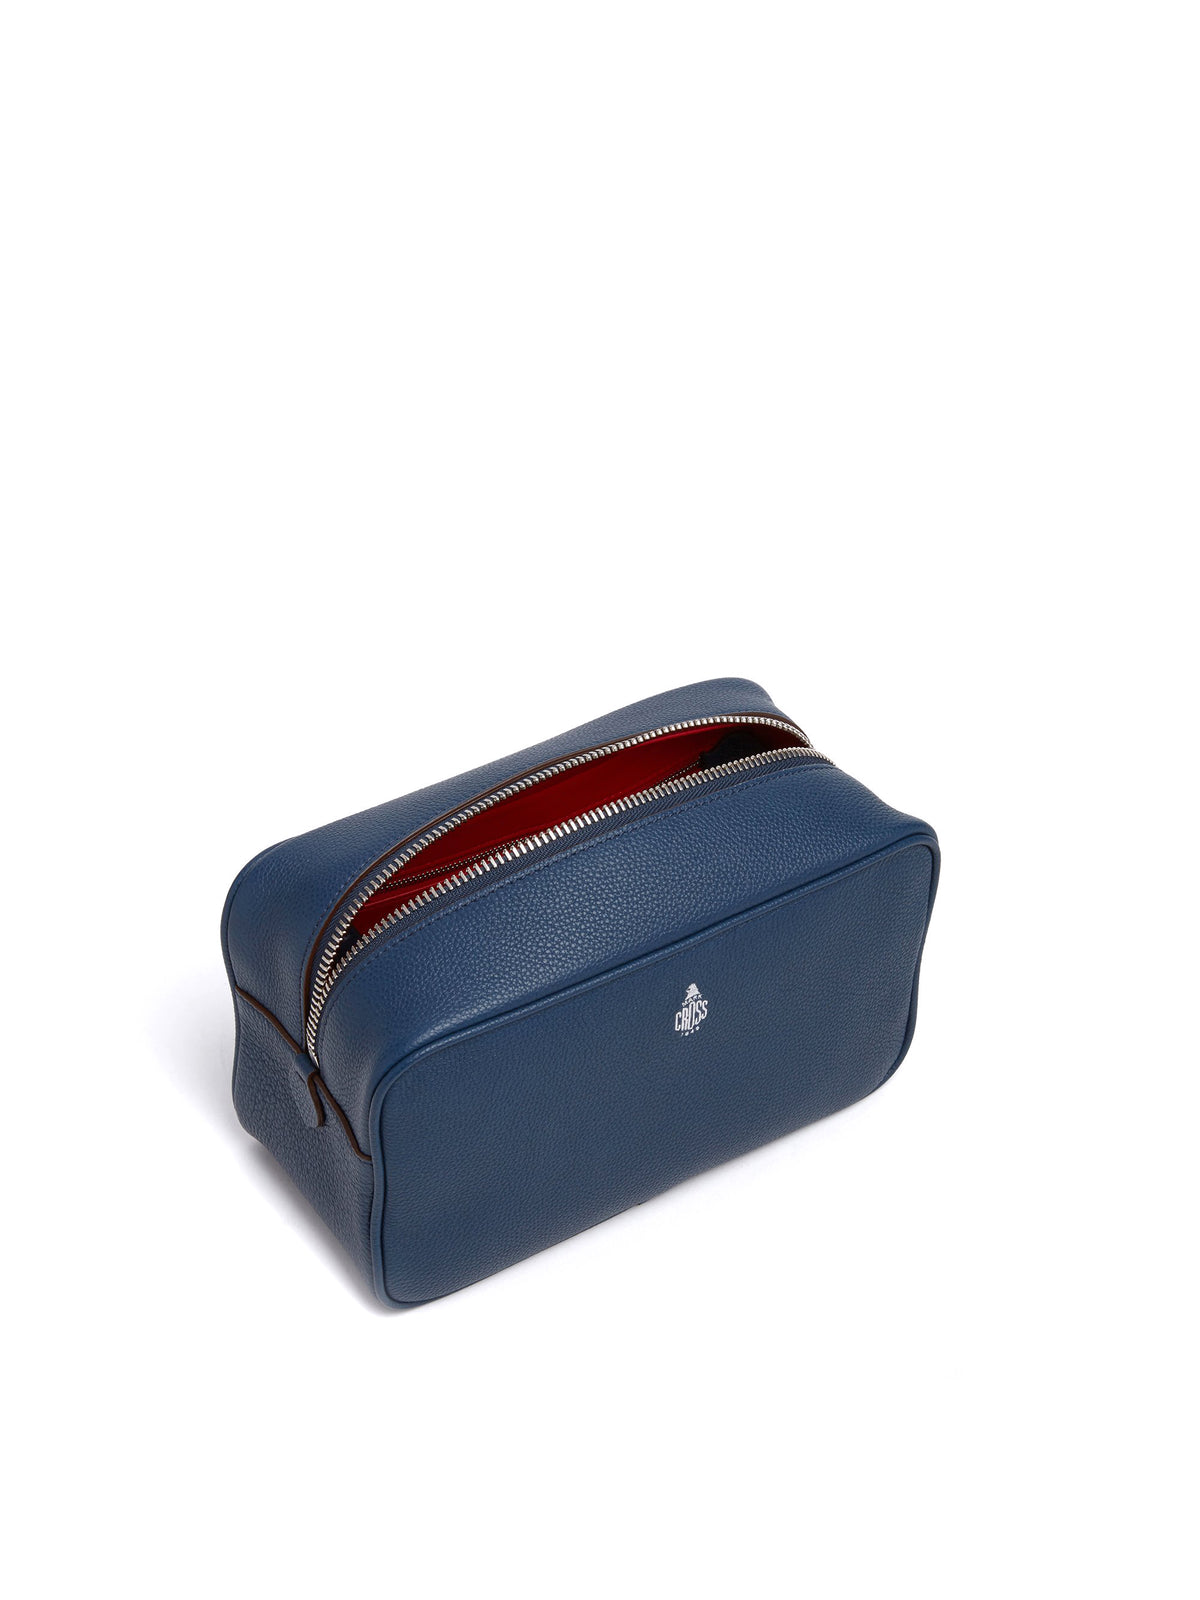 Mark Cross Leather Wash Bag Tumbled Grain Navy Interior